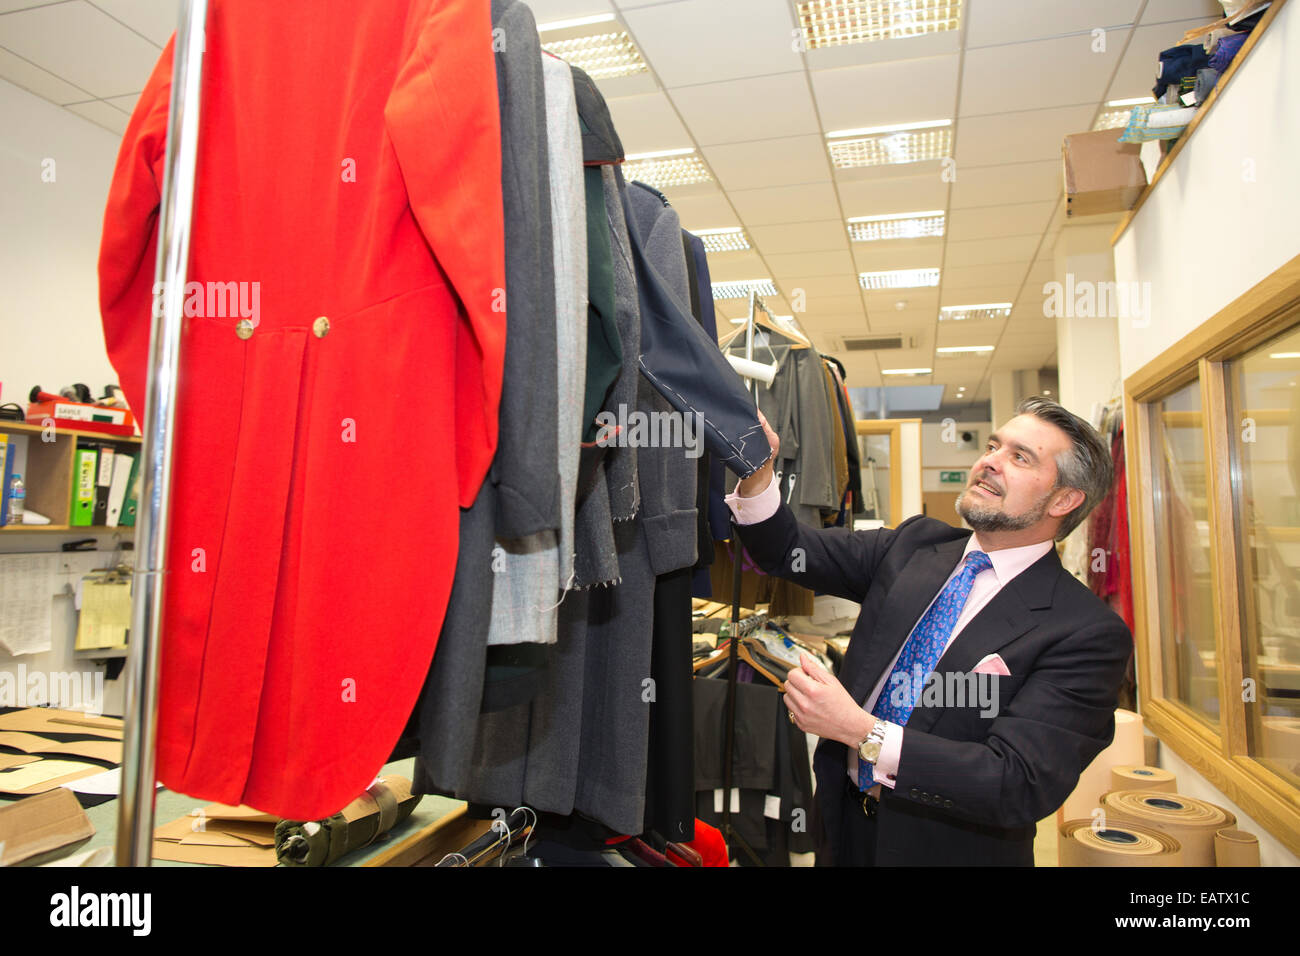 William Skinner, Managing Director at Dege & Skinner, family-owned tailoring house, Savile Row, Central London, - Stock Image